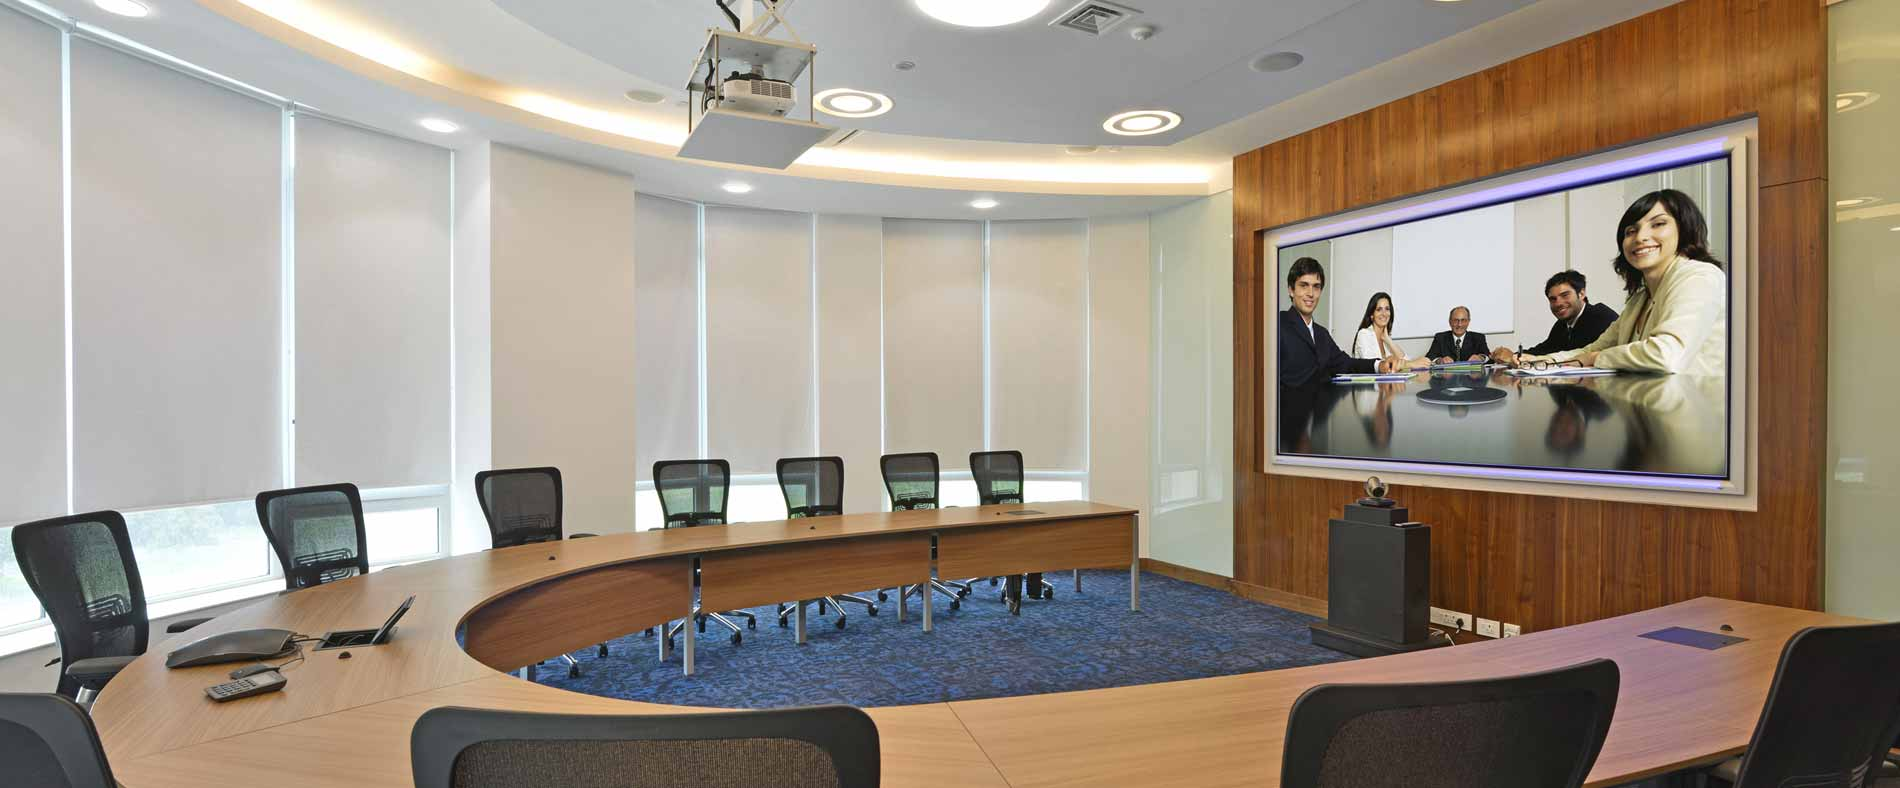 VIDEO COLLABORATION SOLUTIONS